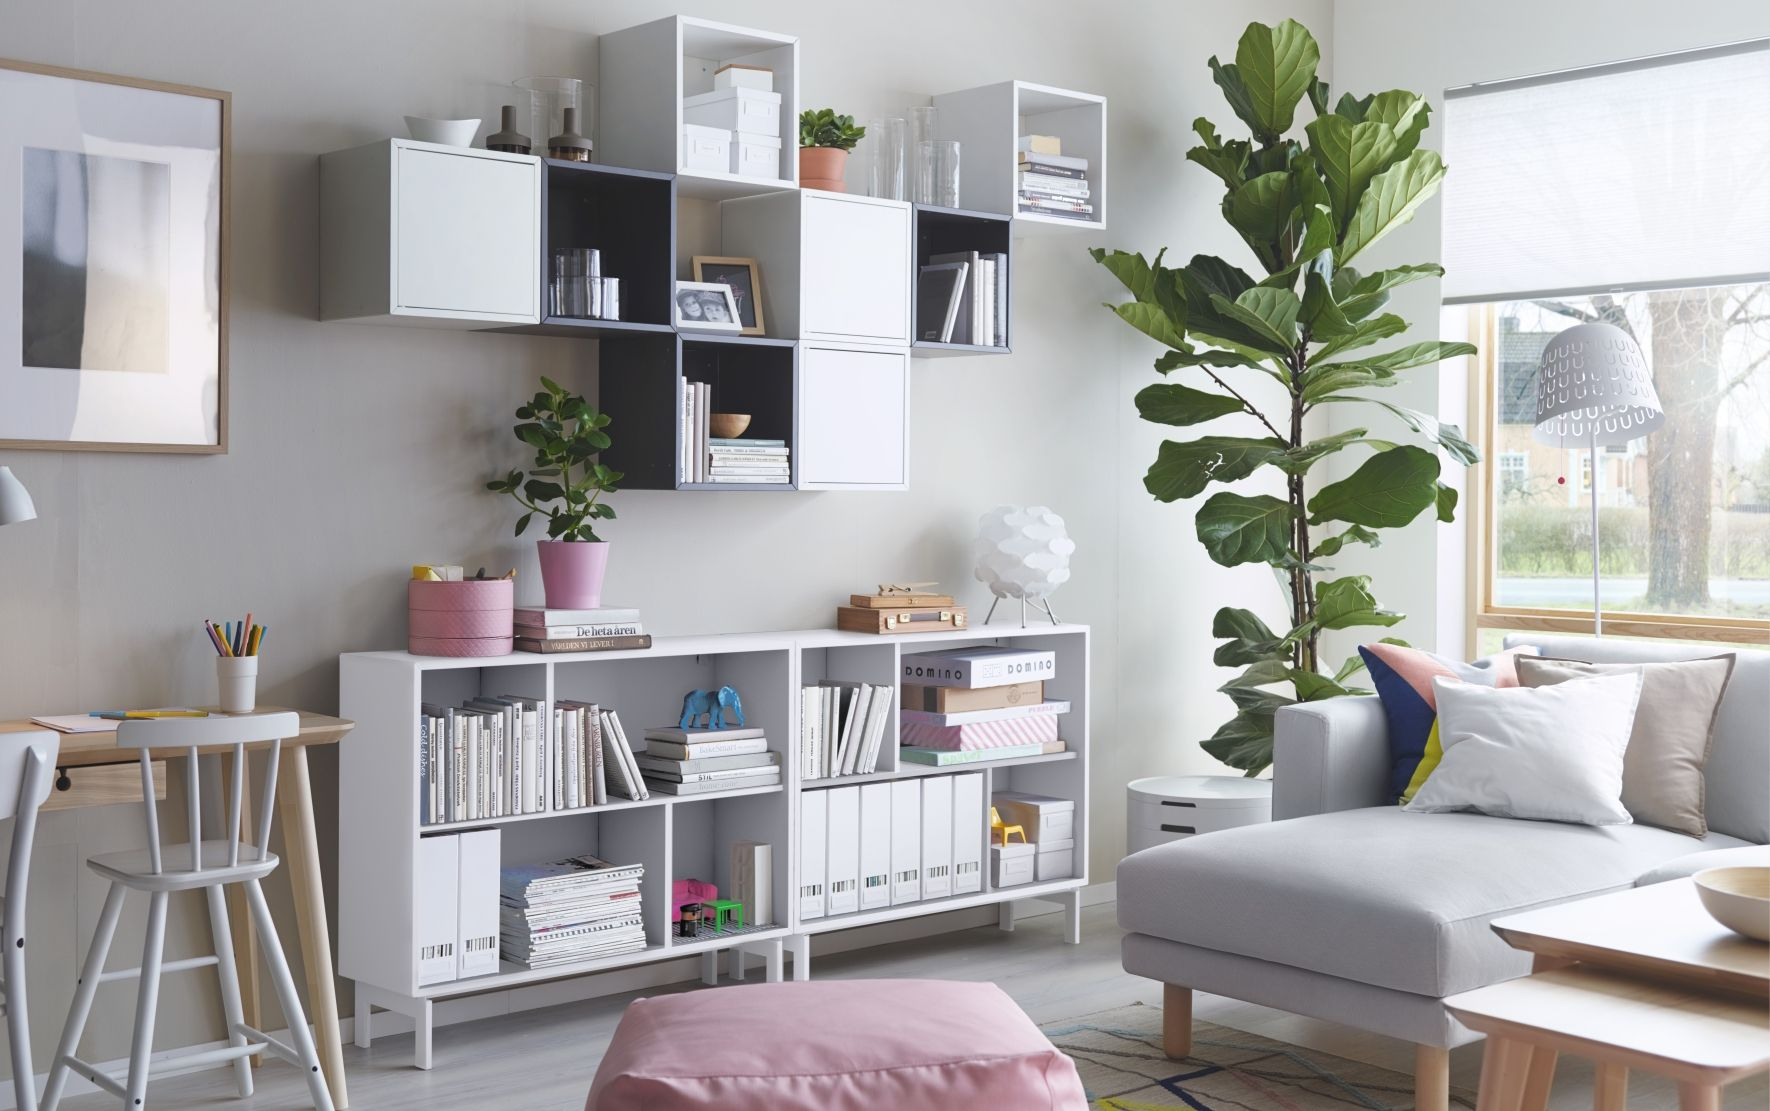 8 Clever Small Room Storage Ideas Small Space Solutions